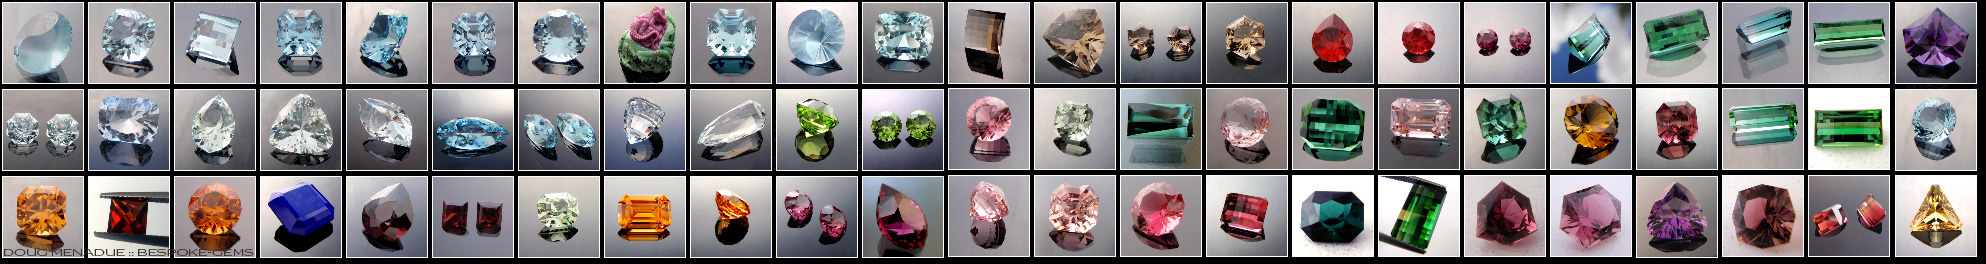 Bespoke Gems - Beautiful Precision Cut Gemstones - Click To Enter